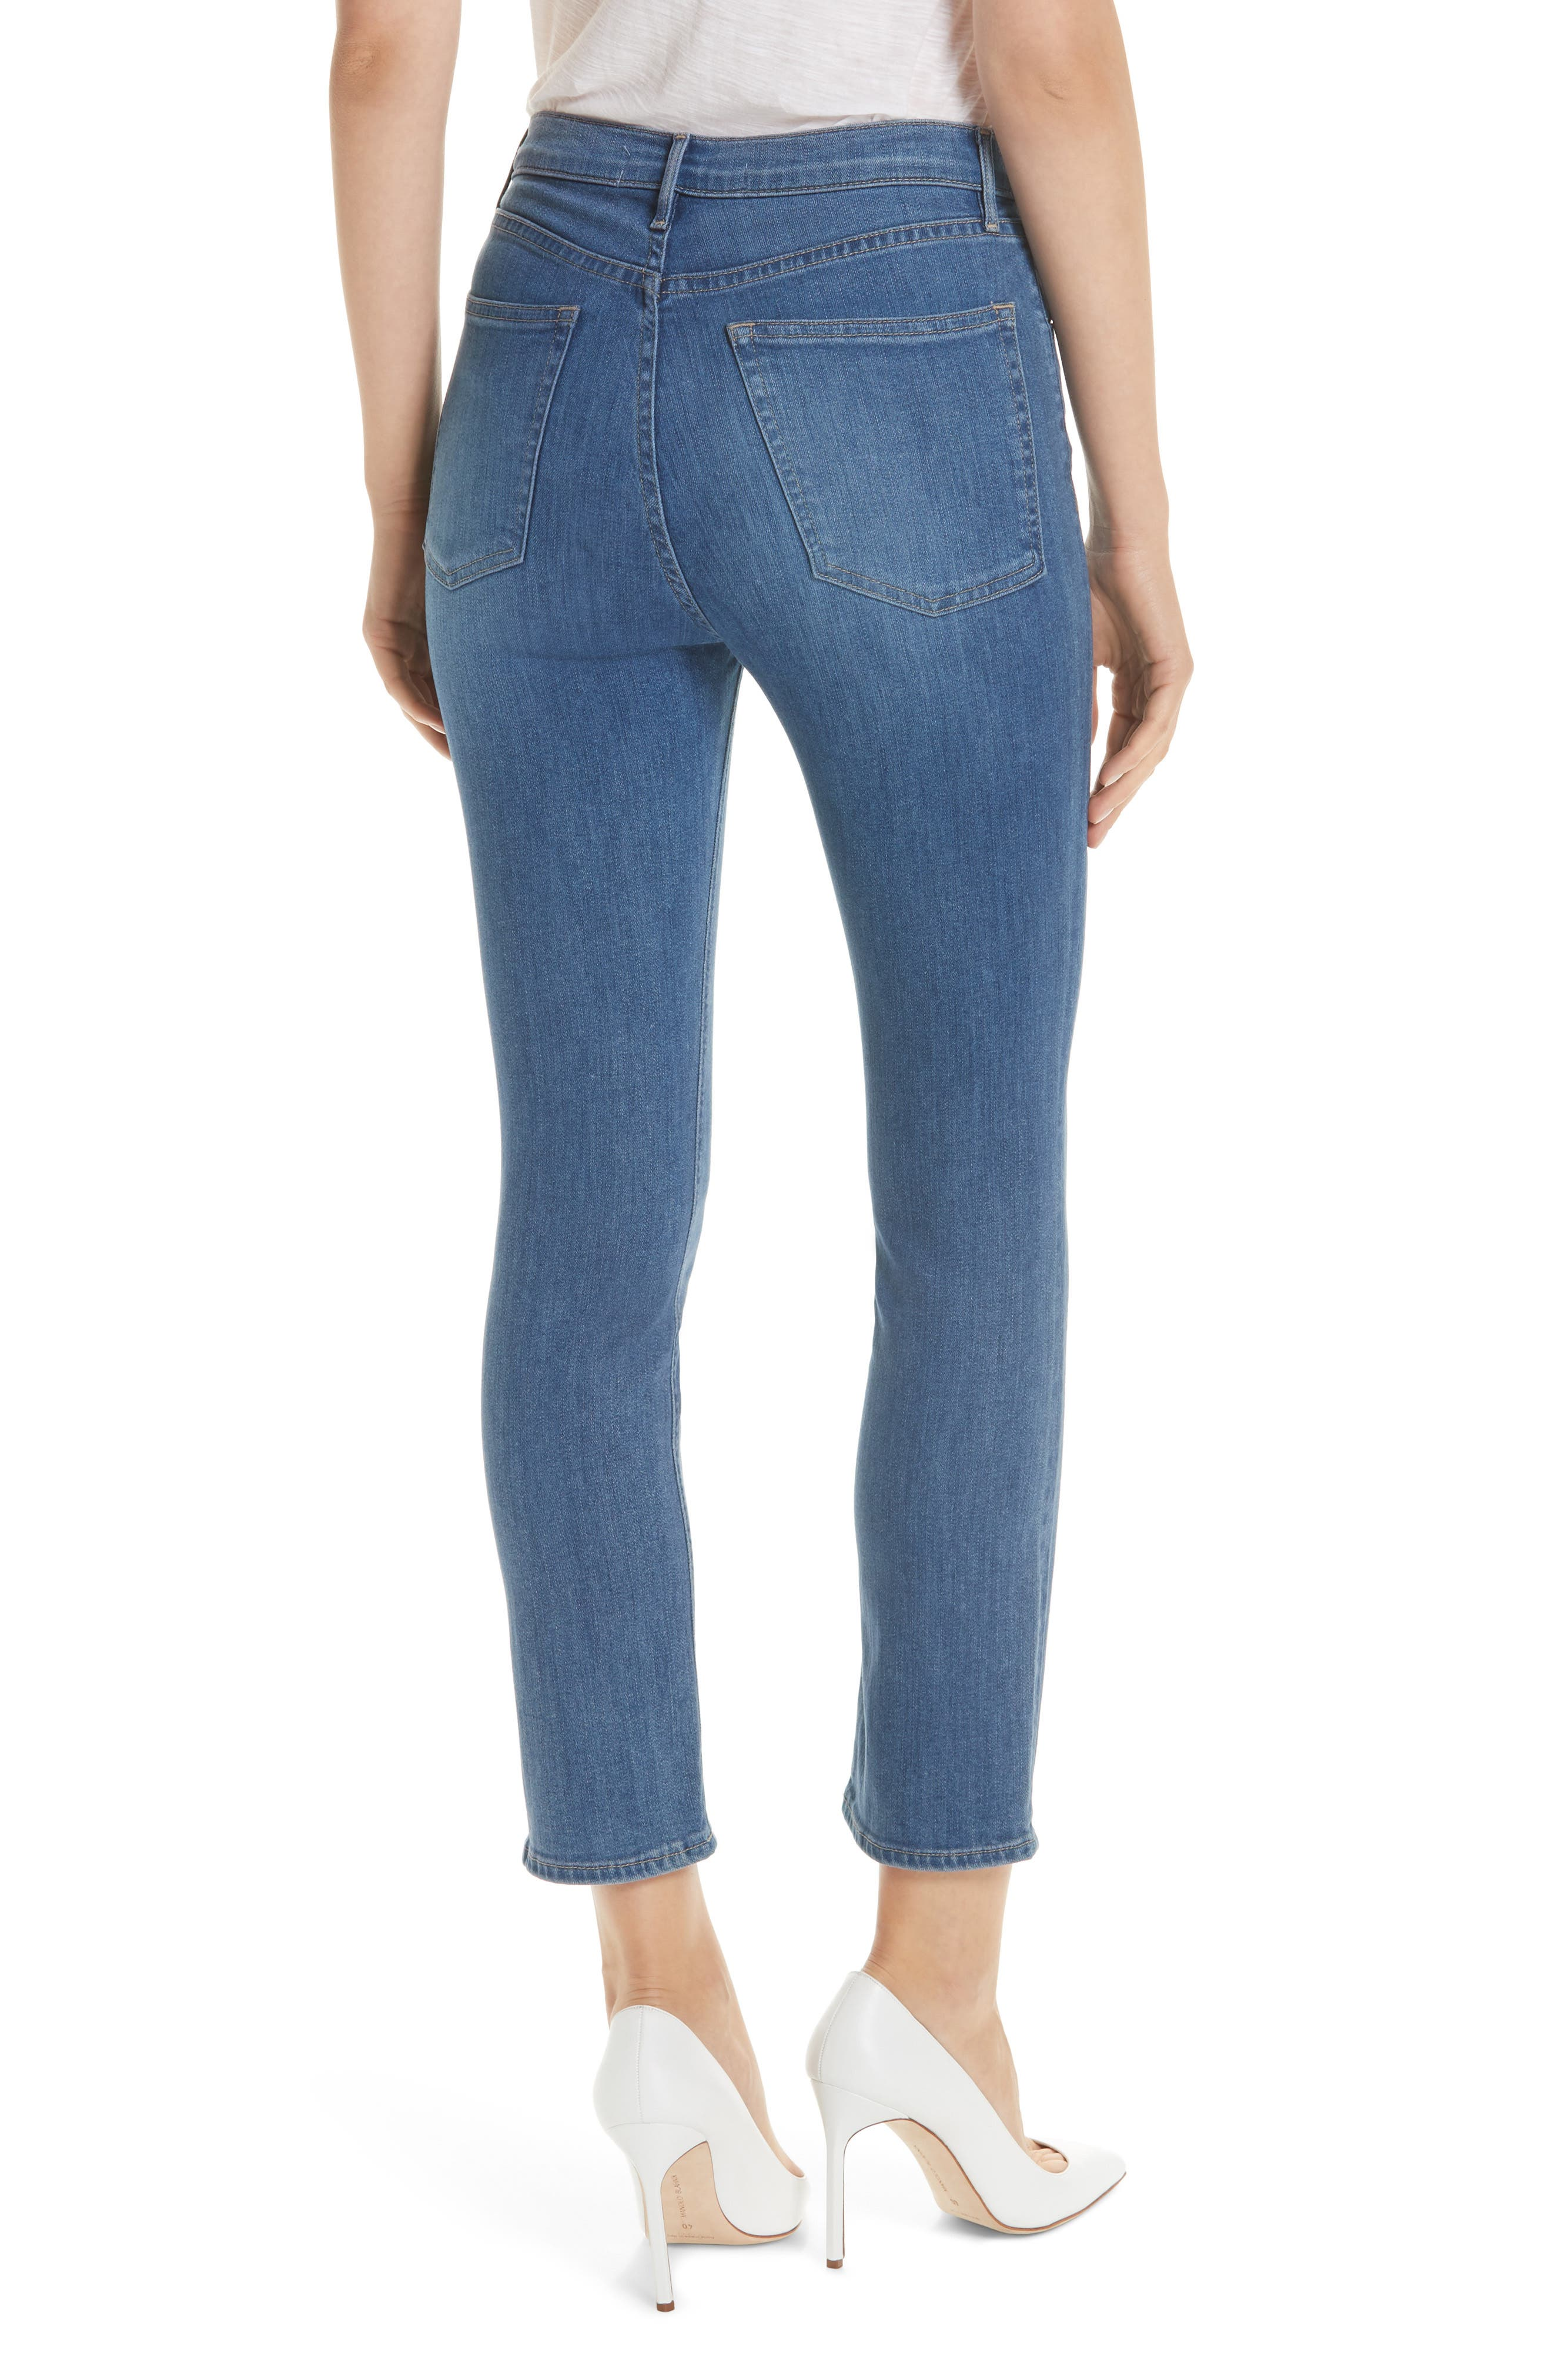 W4 Colette Crop Skinny Jeans,                             Alternate thumbnail 2, color,                             MILLY